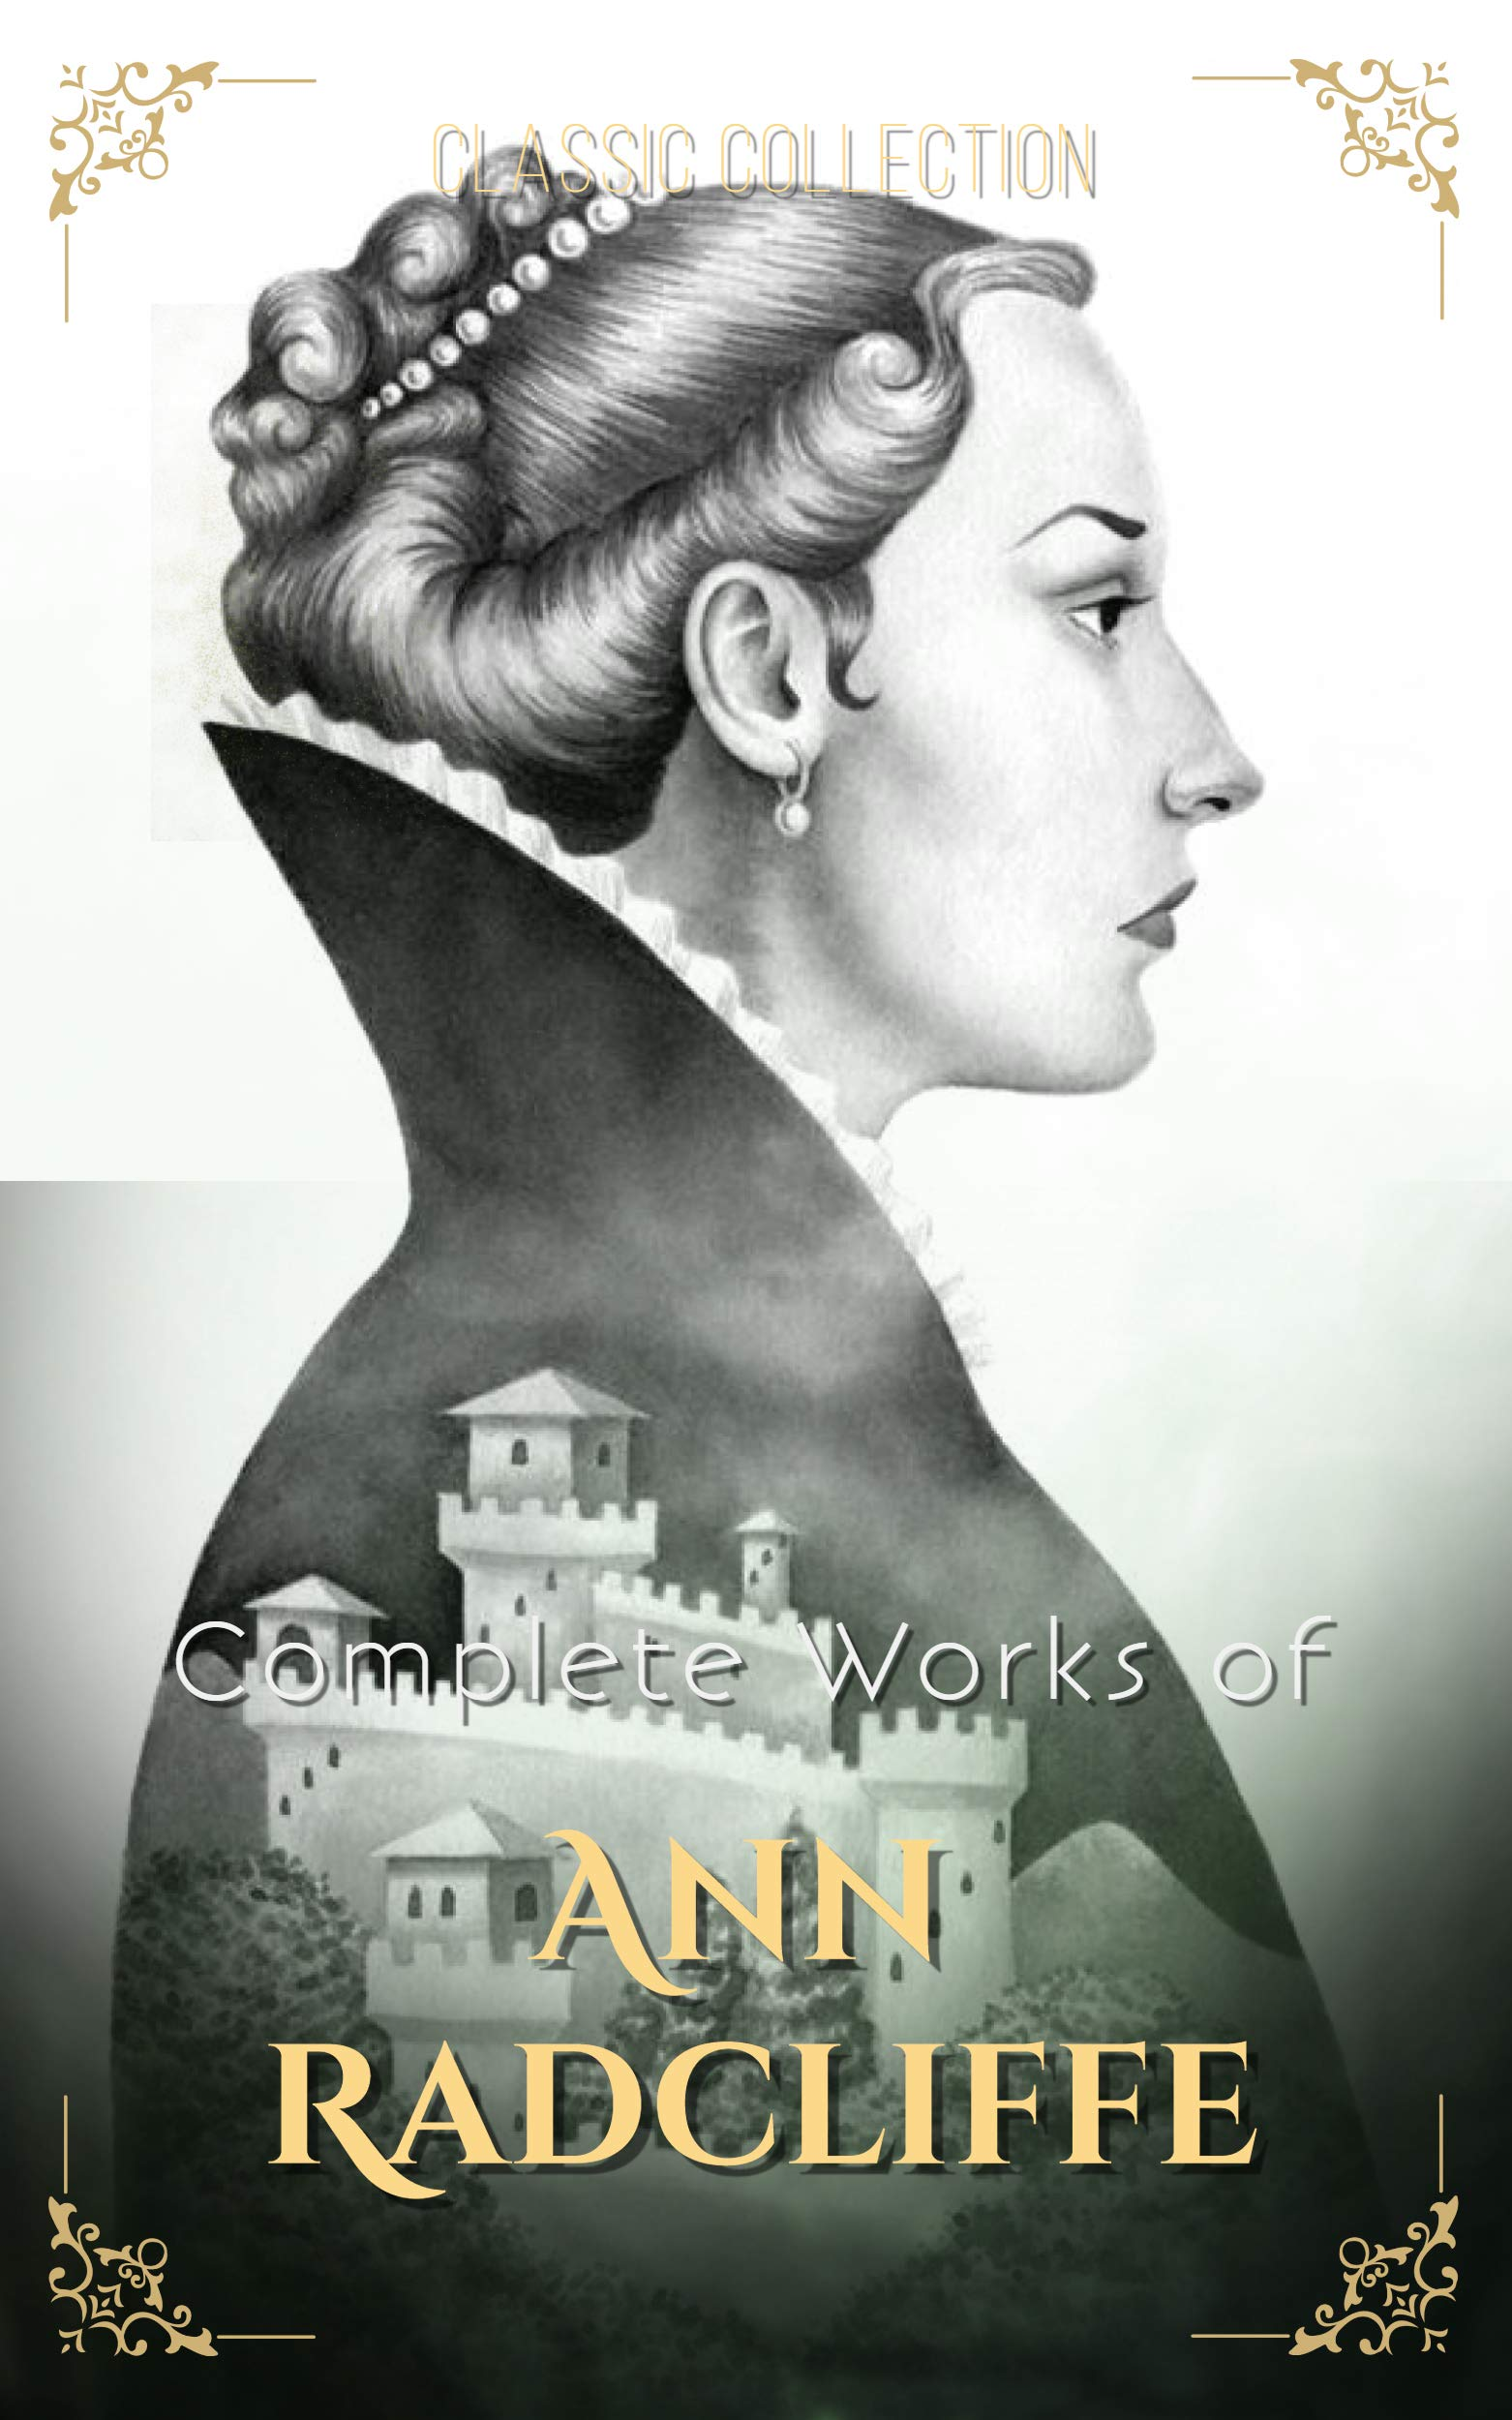 Complete Works of Ann Radcliffe (Annotated): Collection Including The Italian, The Mysteries of Udolpho, The Romance of the Forest, A Sicilian Romance, and More